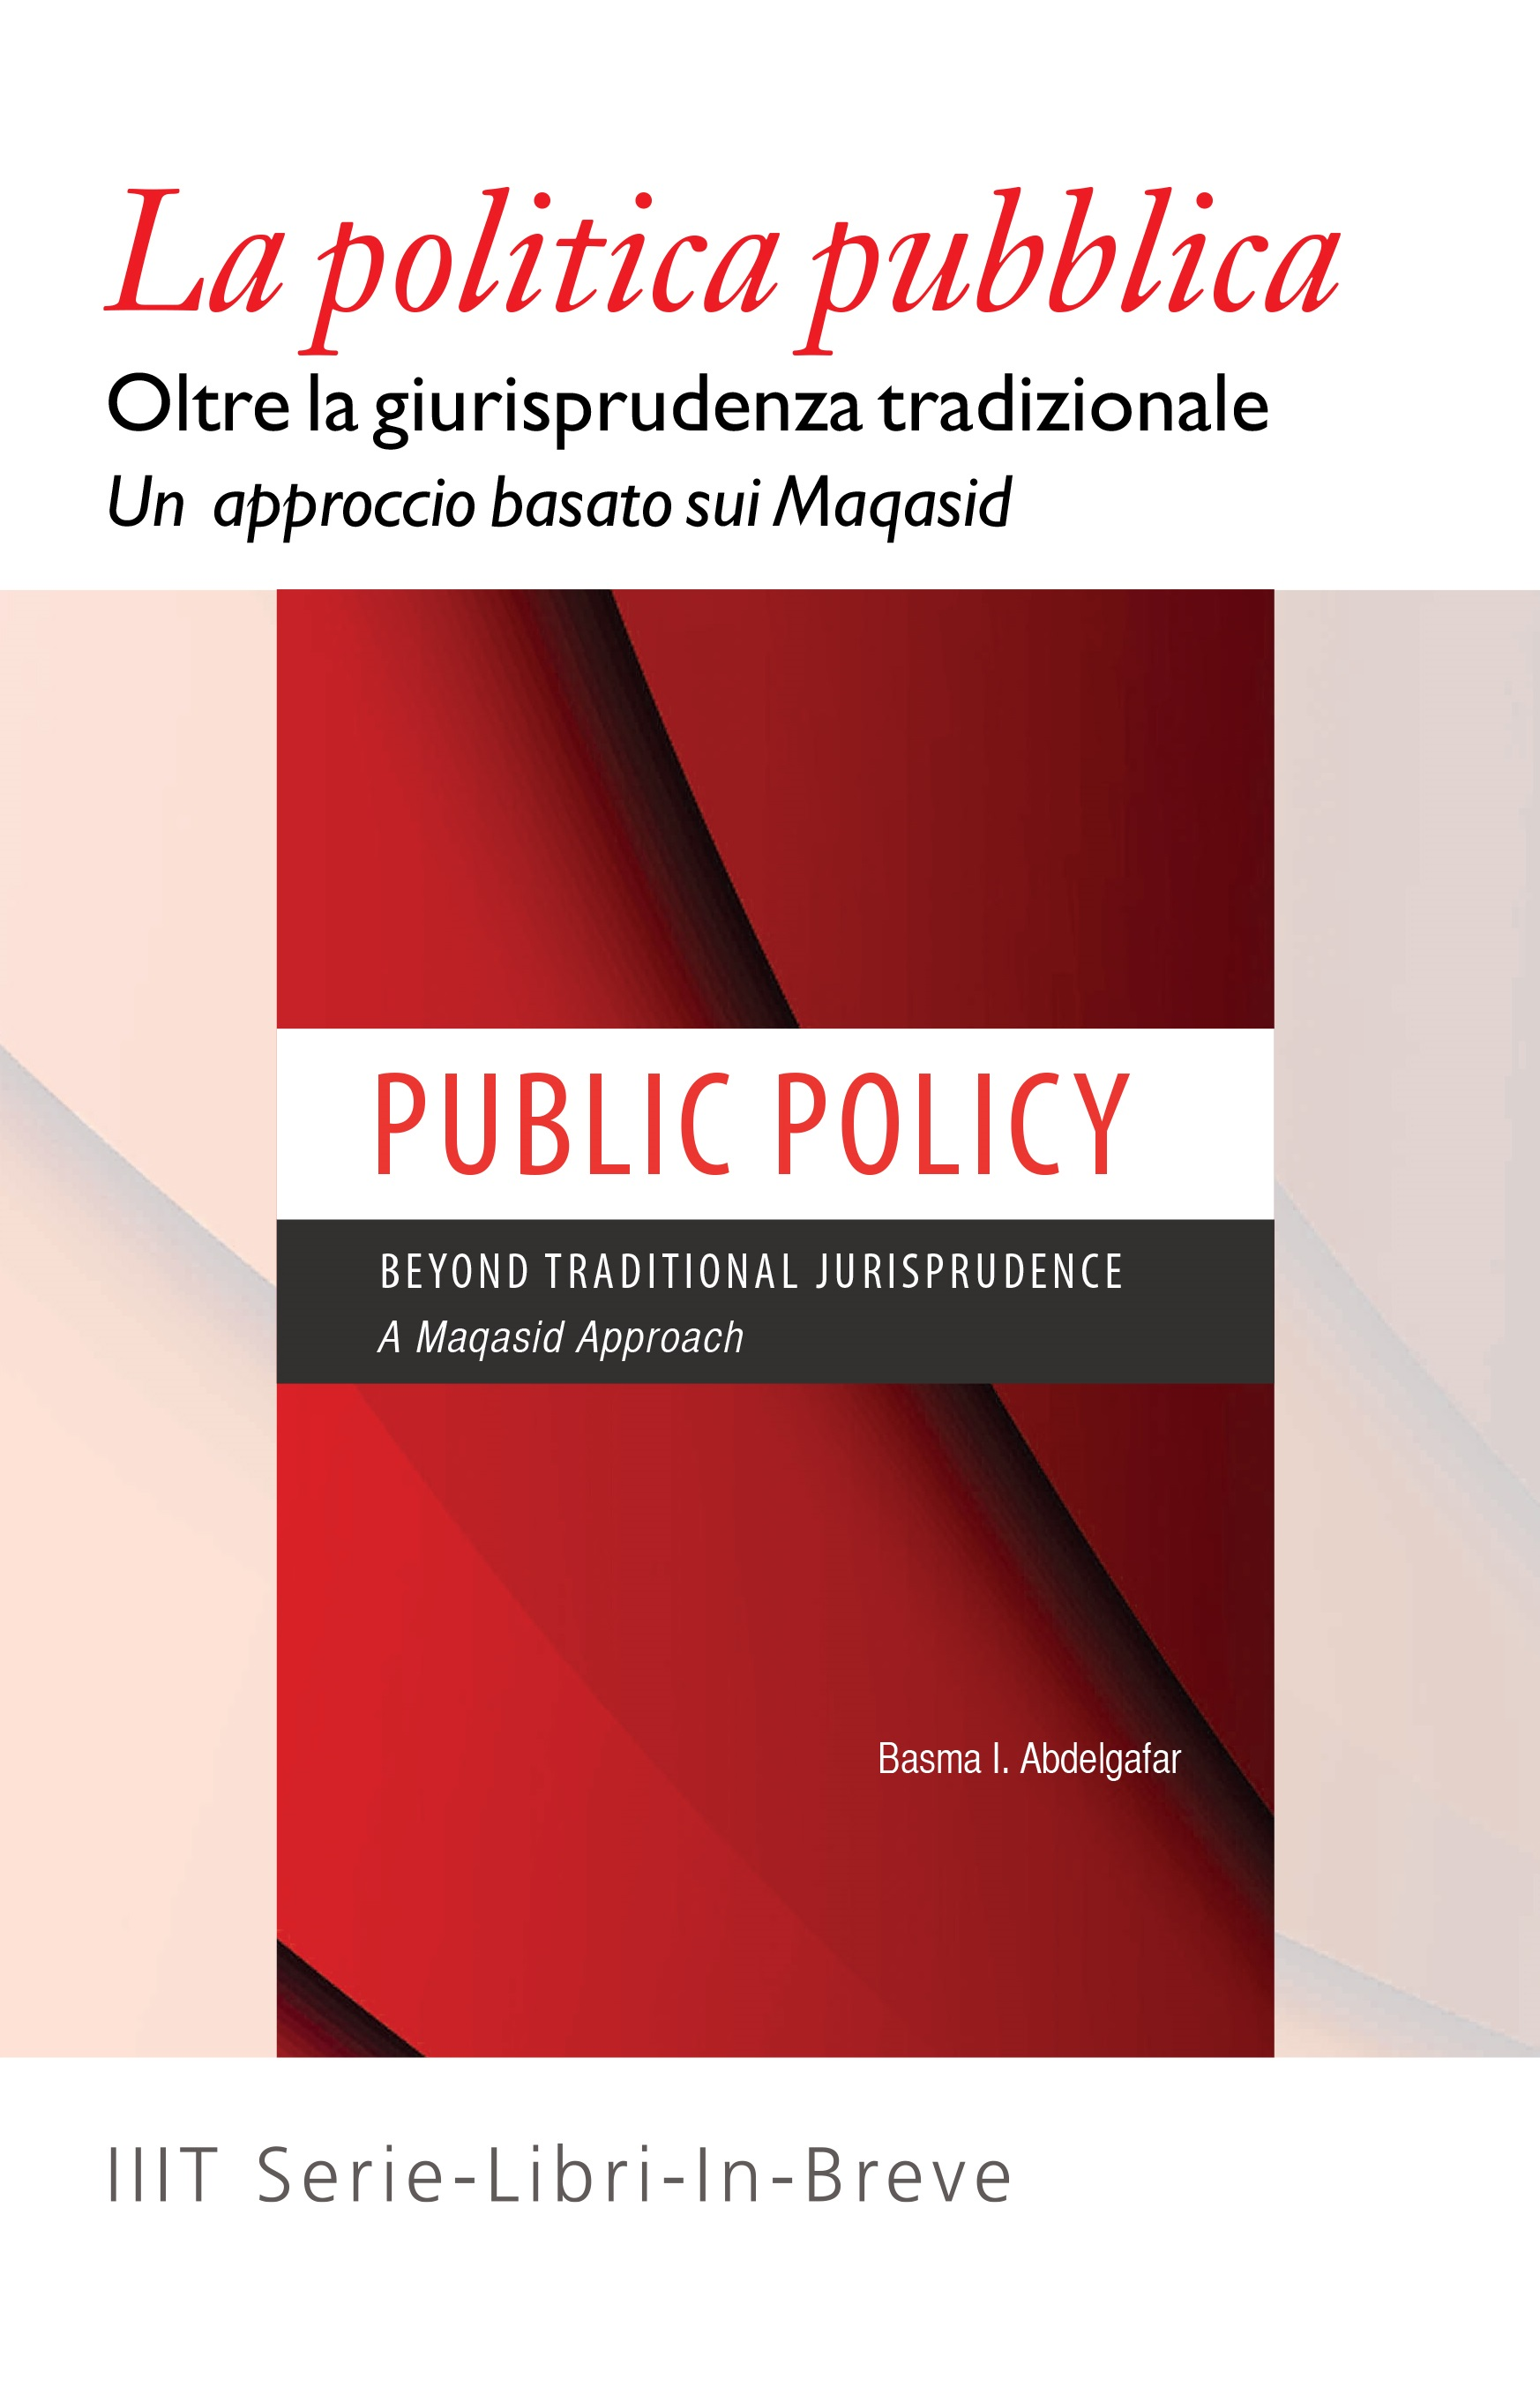 Public Policy Beyond Traditional Jurisprudence – Italian (Books-in-Brief)